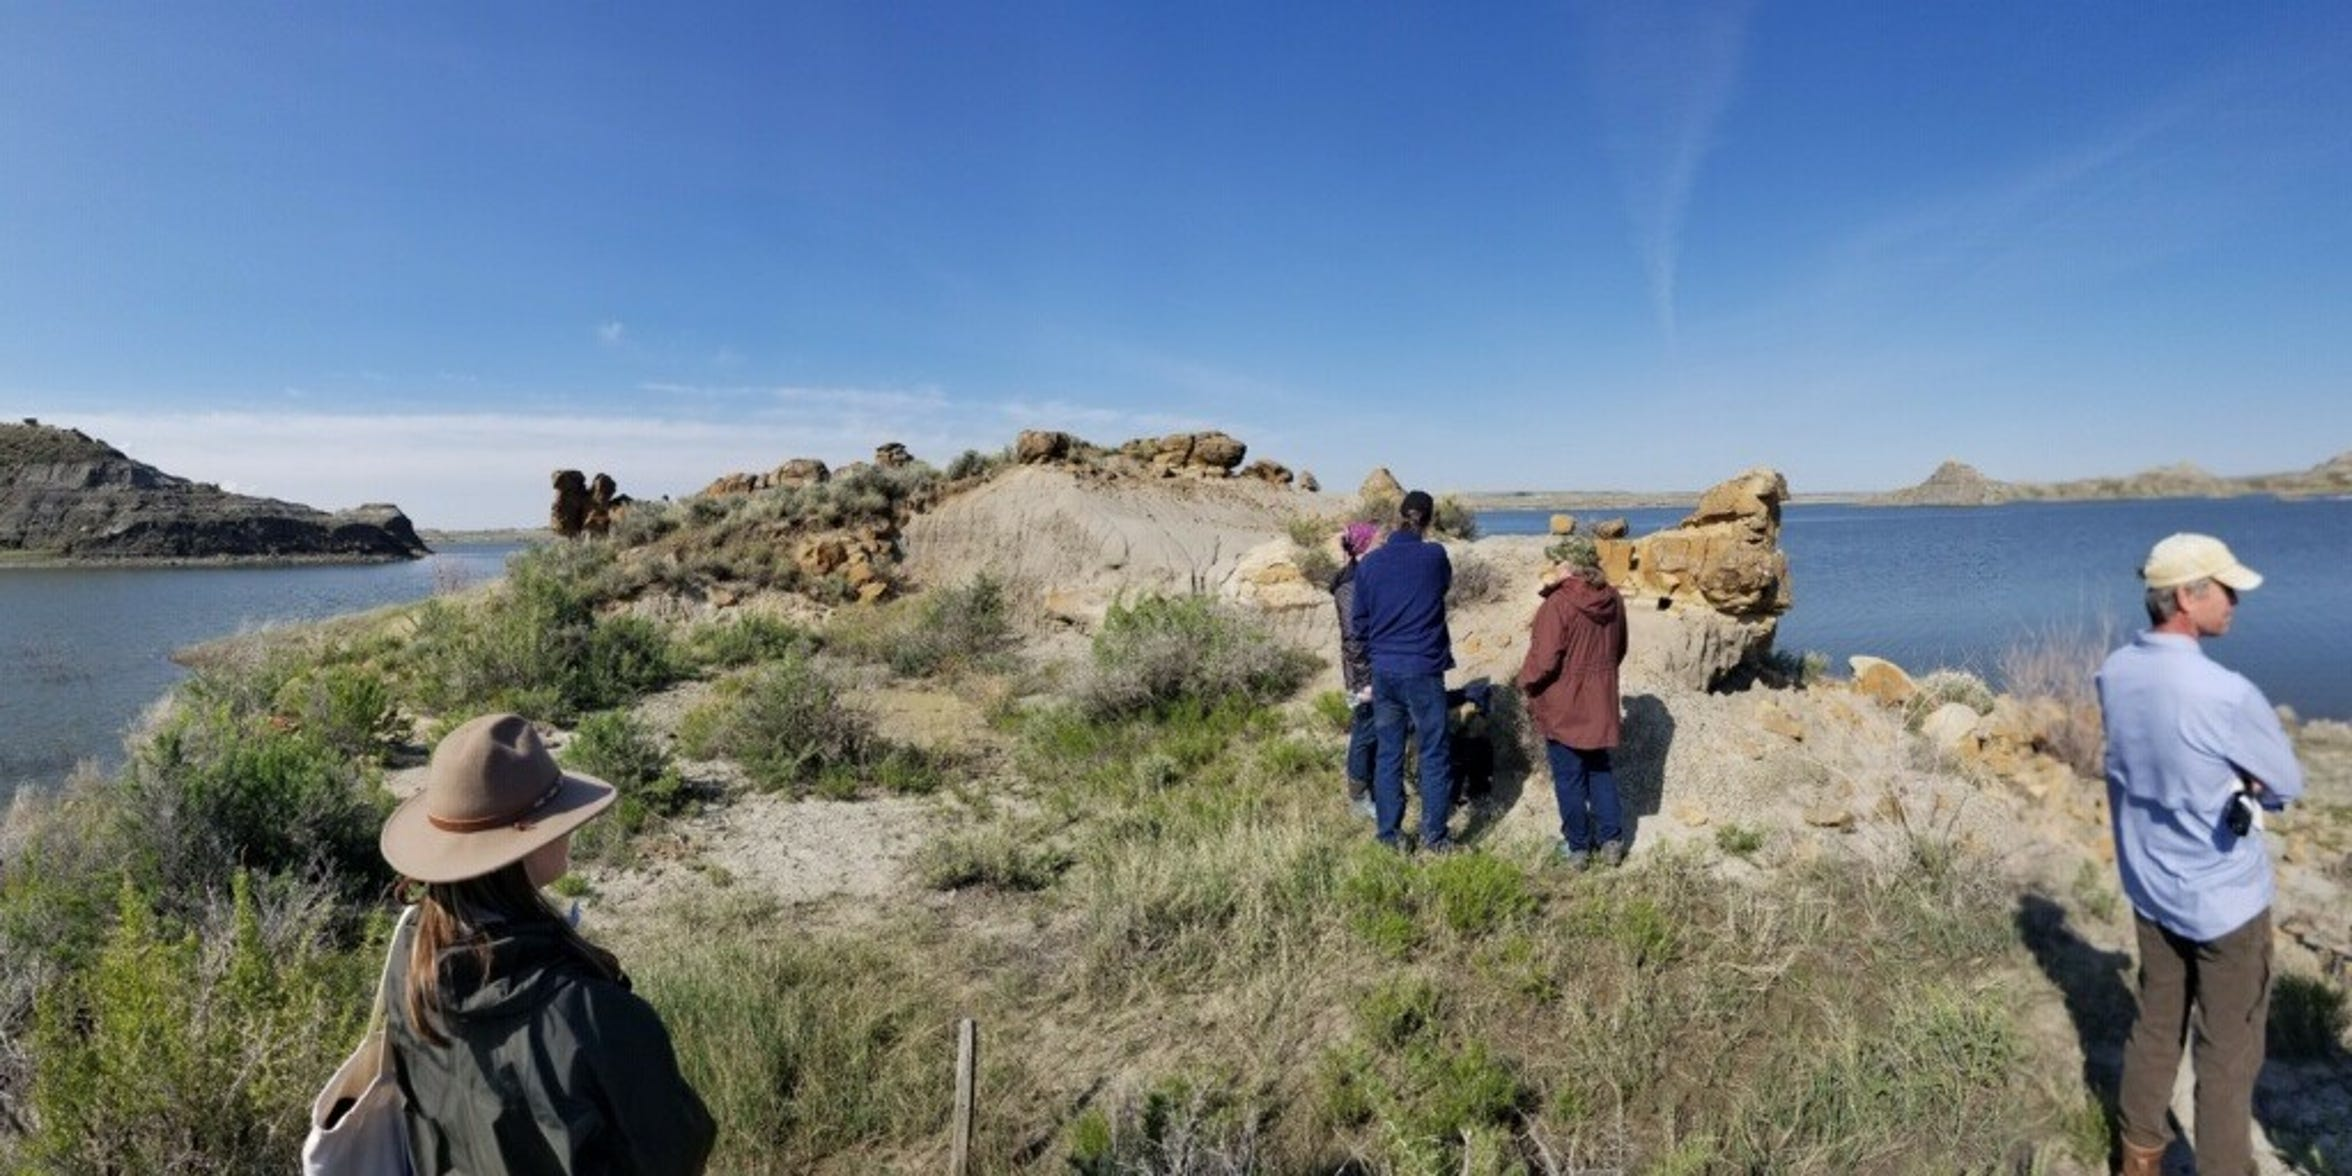 The Wankel family returned in May to the sight along Fort Peck Reservoir where Kathy Wankel found the dinosaur now known as the Nation's Rex and soon to go on display at the Smithsonian National Museum of Natural History in Washington, D.C.